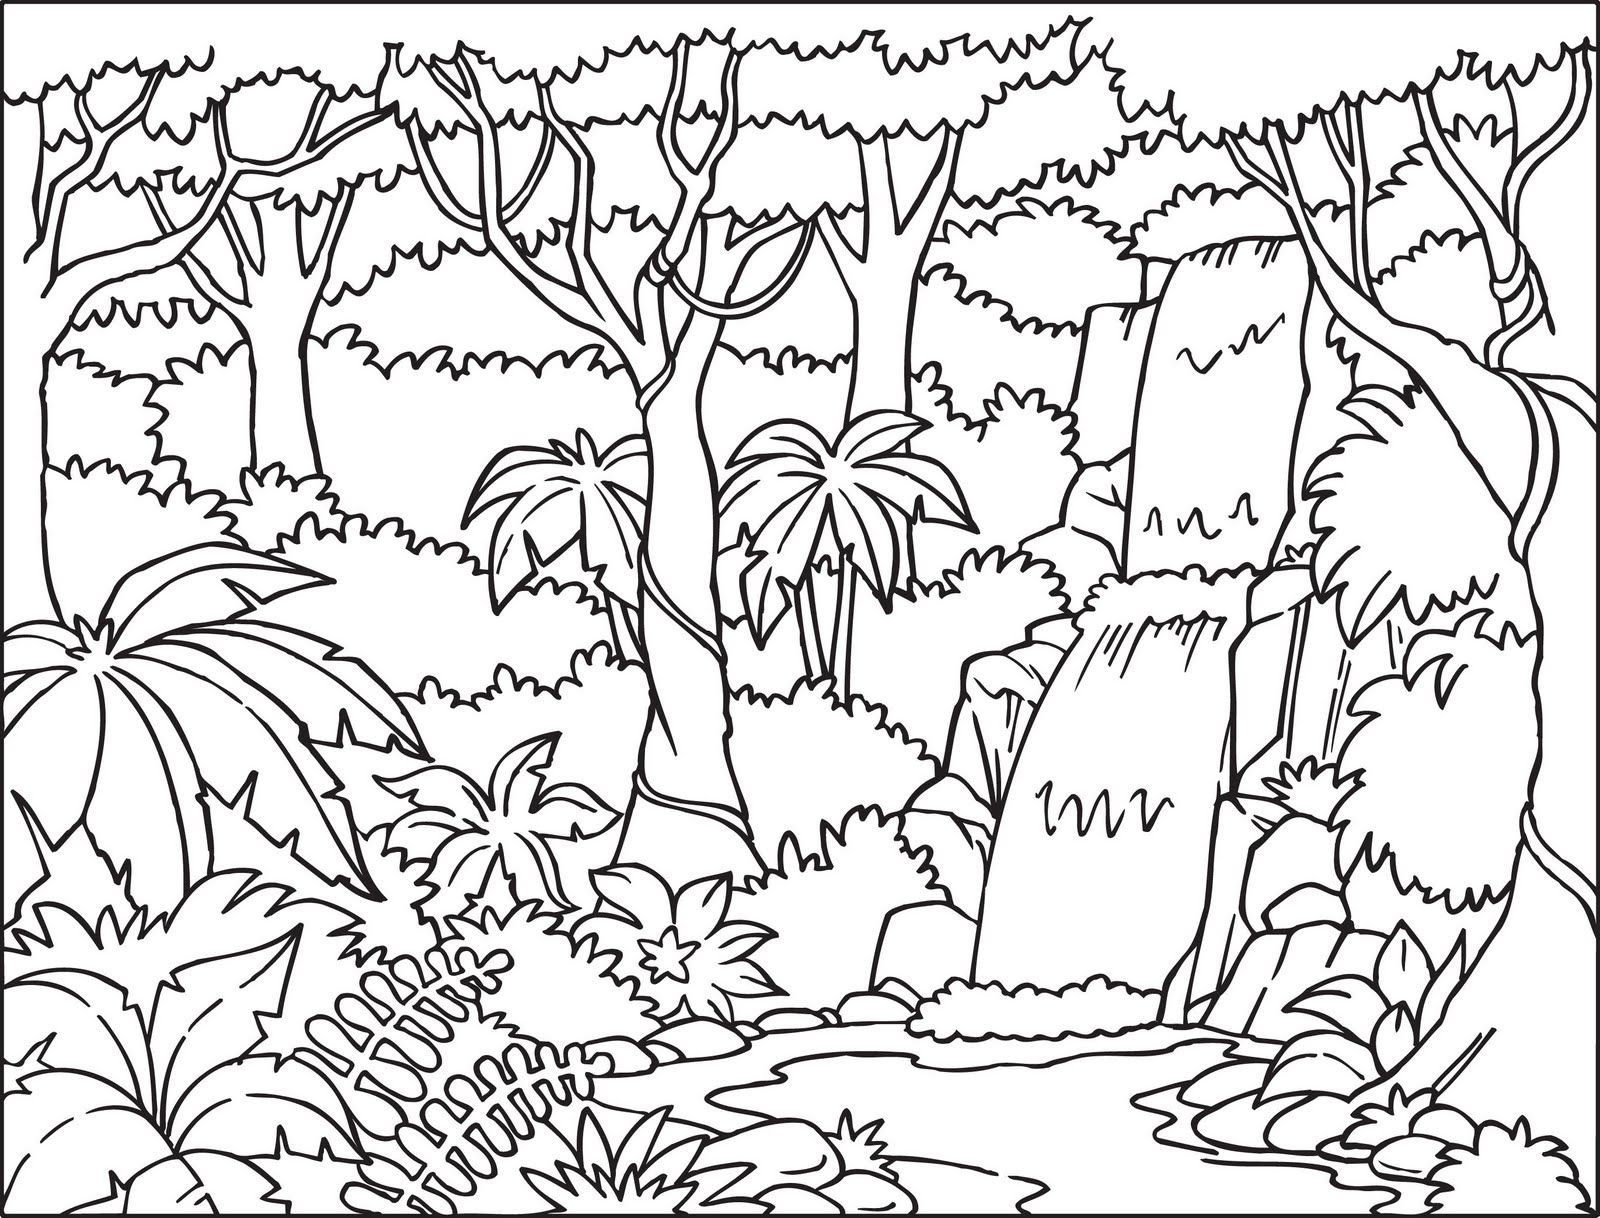 Jungle animals coloring pages for kids - Free Printable Rainforest Worksheets Number Of Thanks Recieved 57 Total Number Posts Thanked